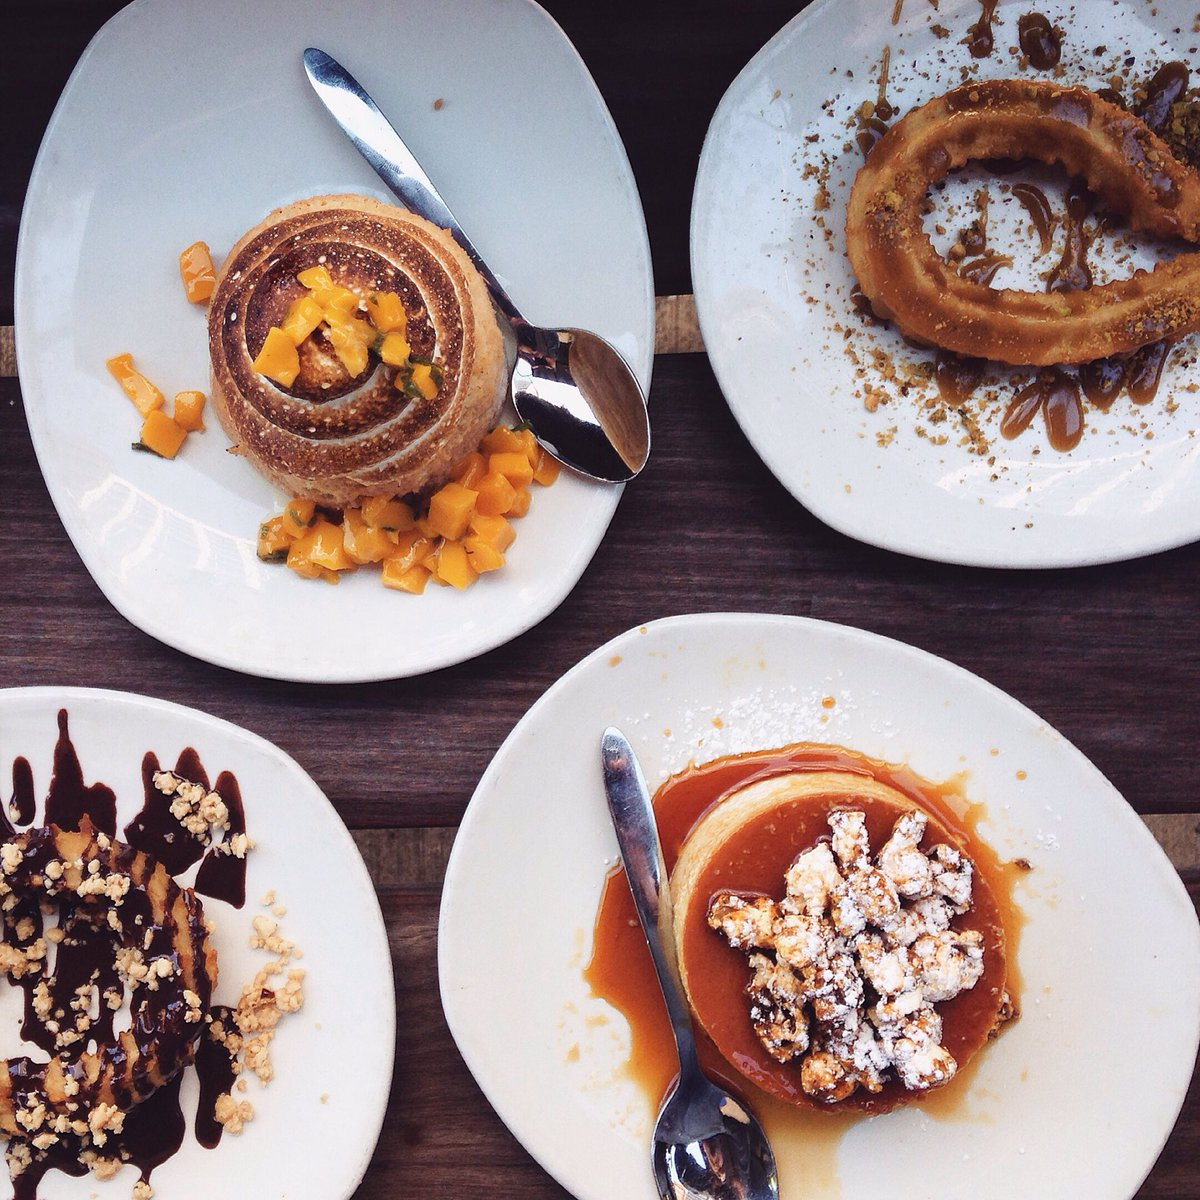 Ur my idol RT @JoshuaJHager My #FoodCrushFriday? All the desserts from @XocoChicago.